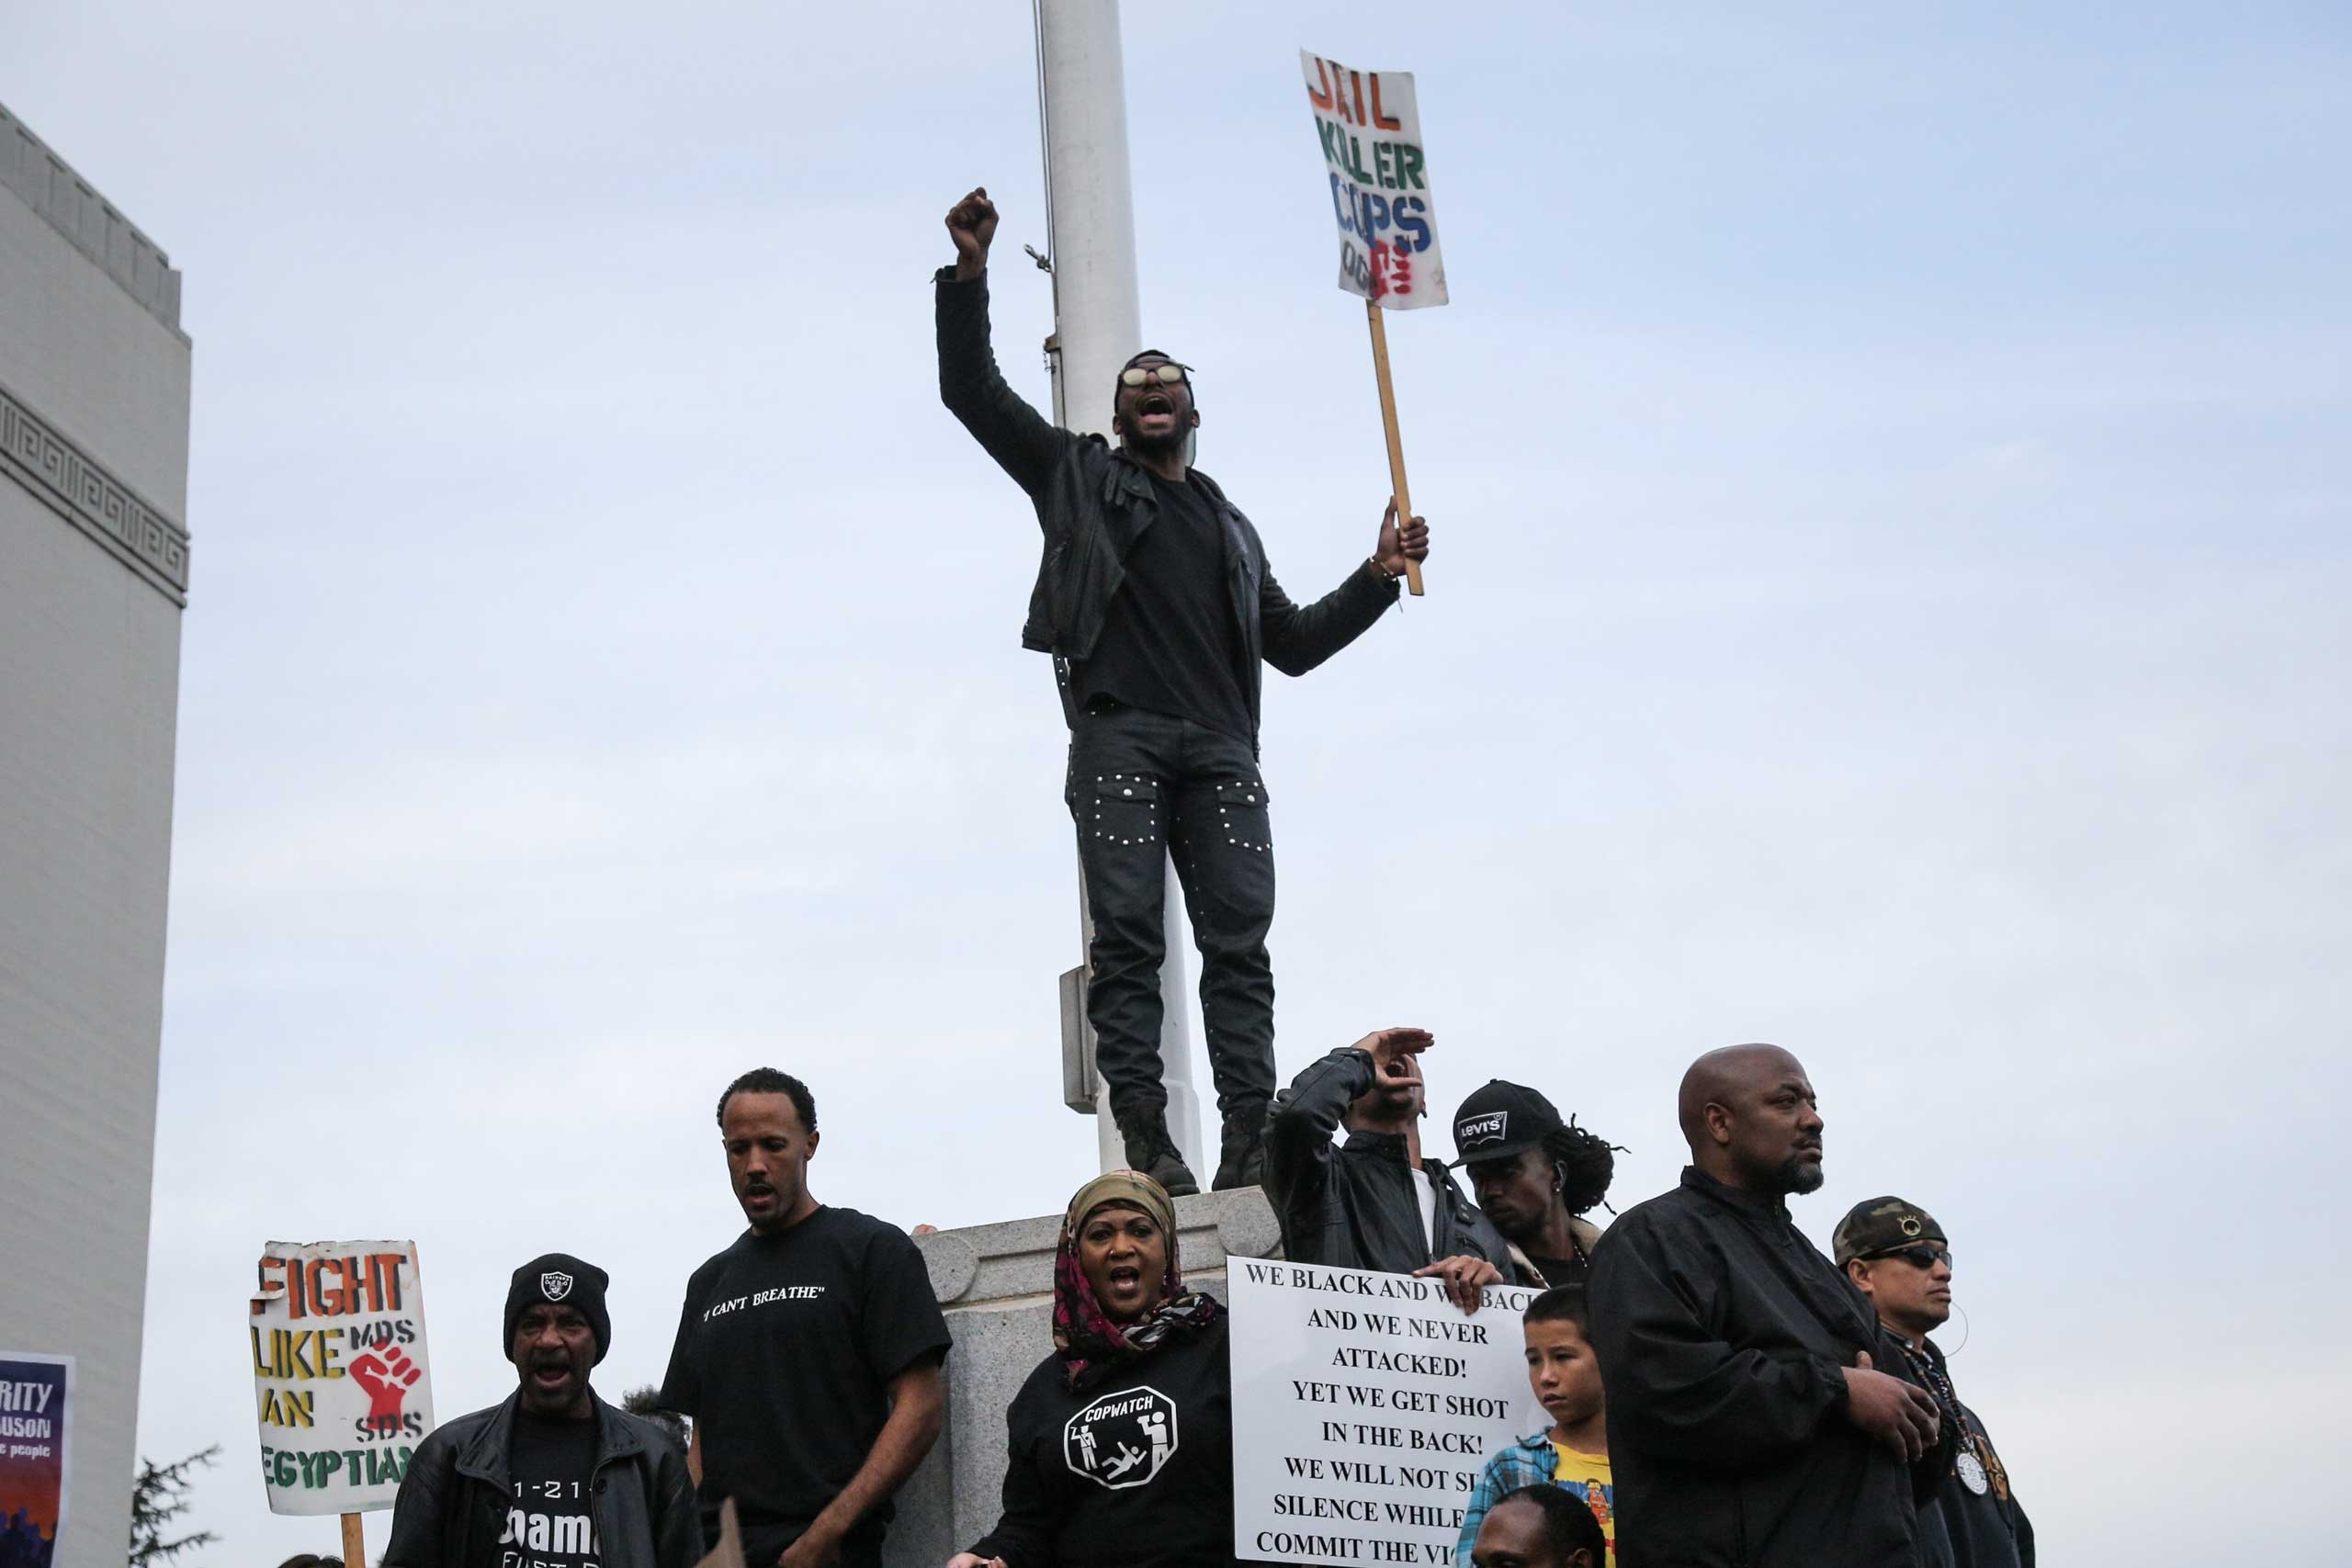 A man holds up a ''Jail Killer Cops' sign during a 'Millions March' demonstration in Oakland, Calif. on Dec. 13, 2014.